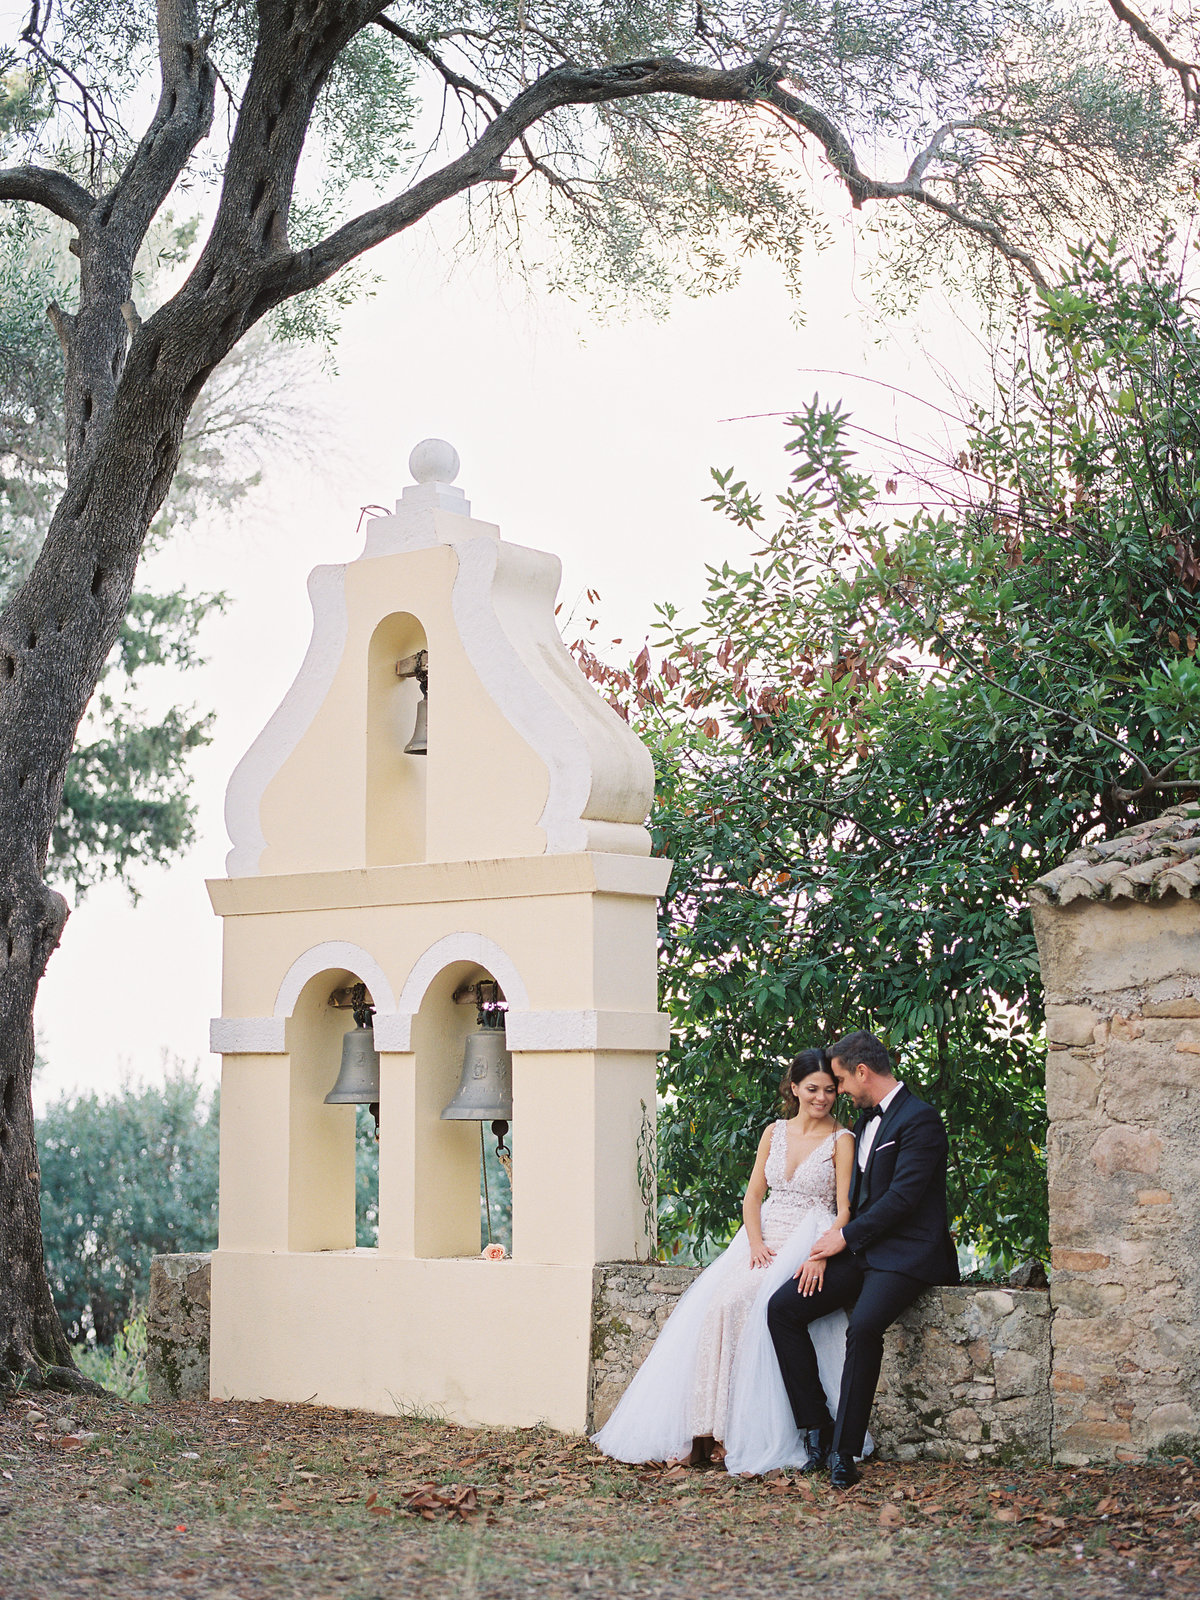 fine art wedding photography in corfu by Kostis Mouselimis on film_043